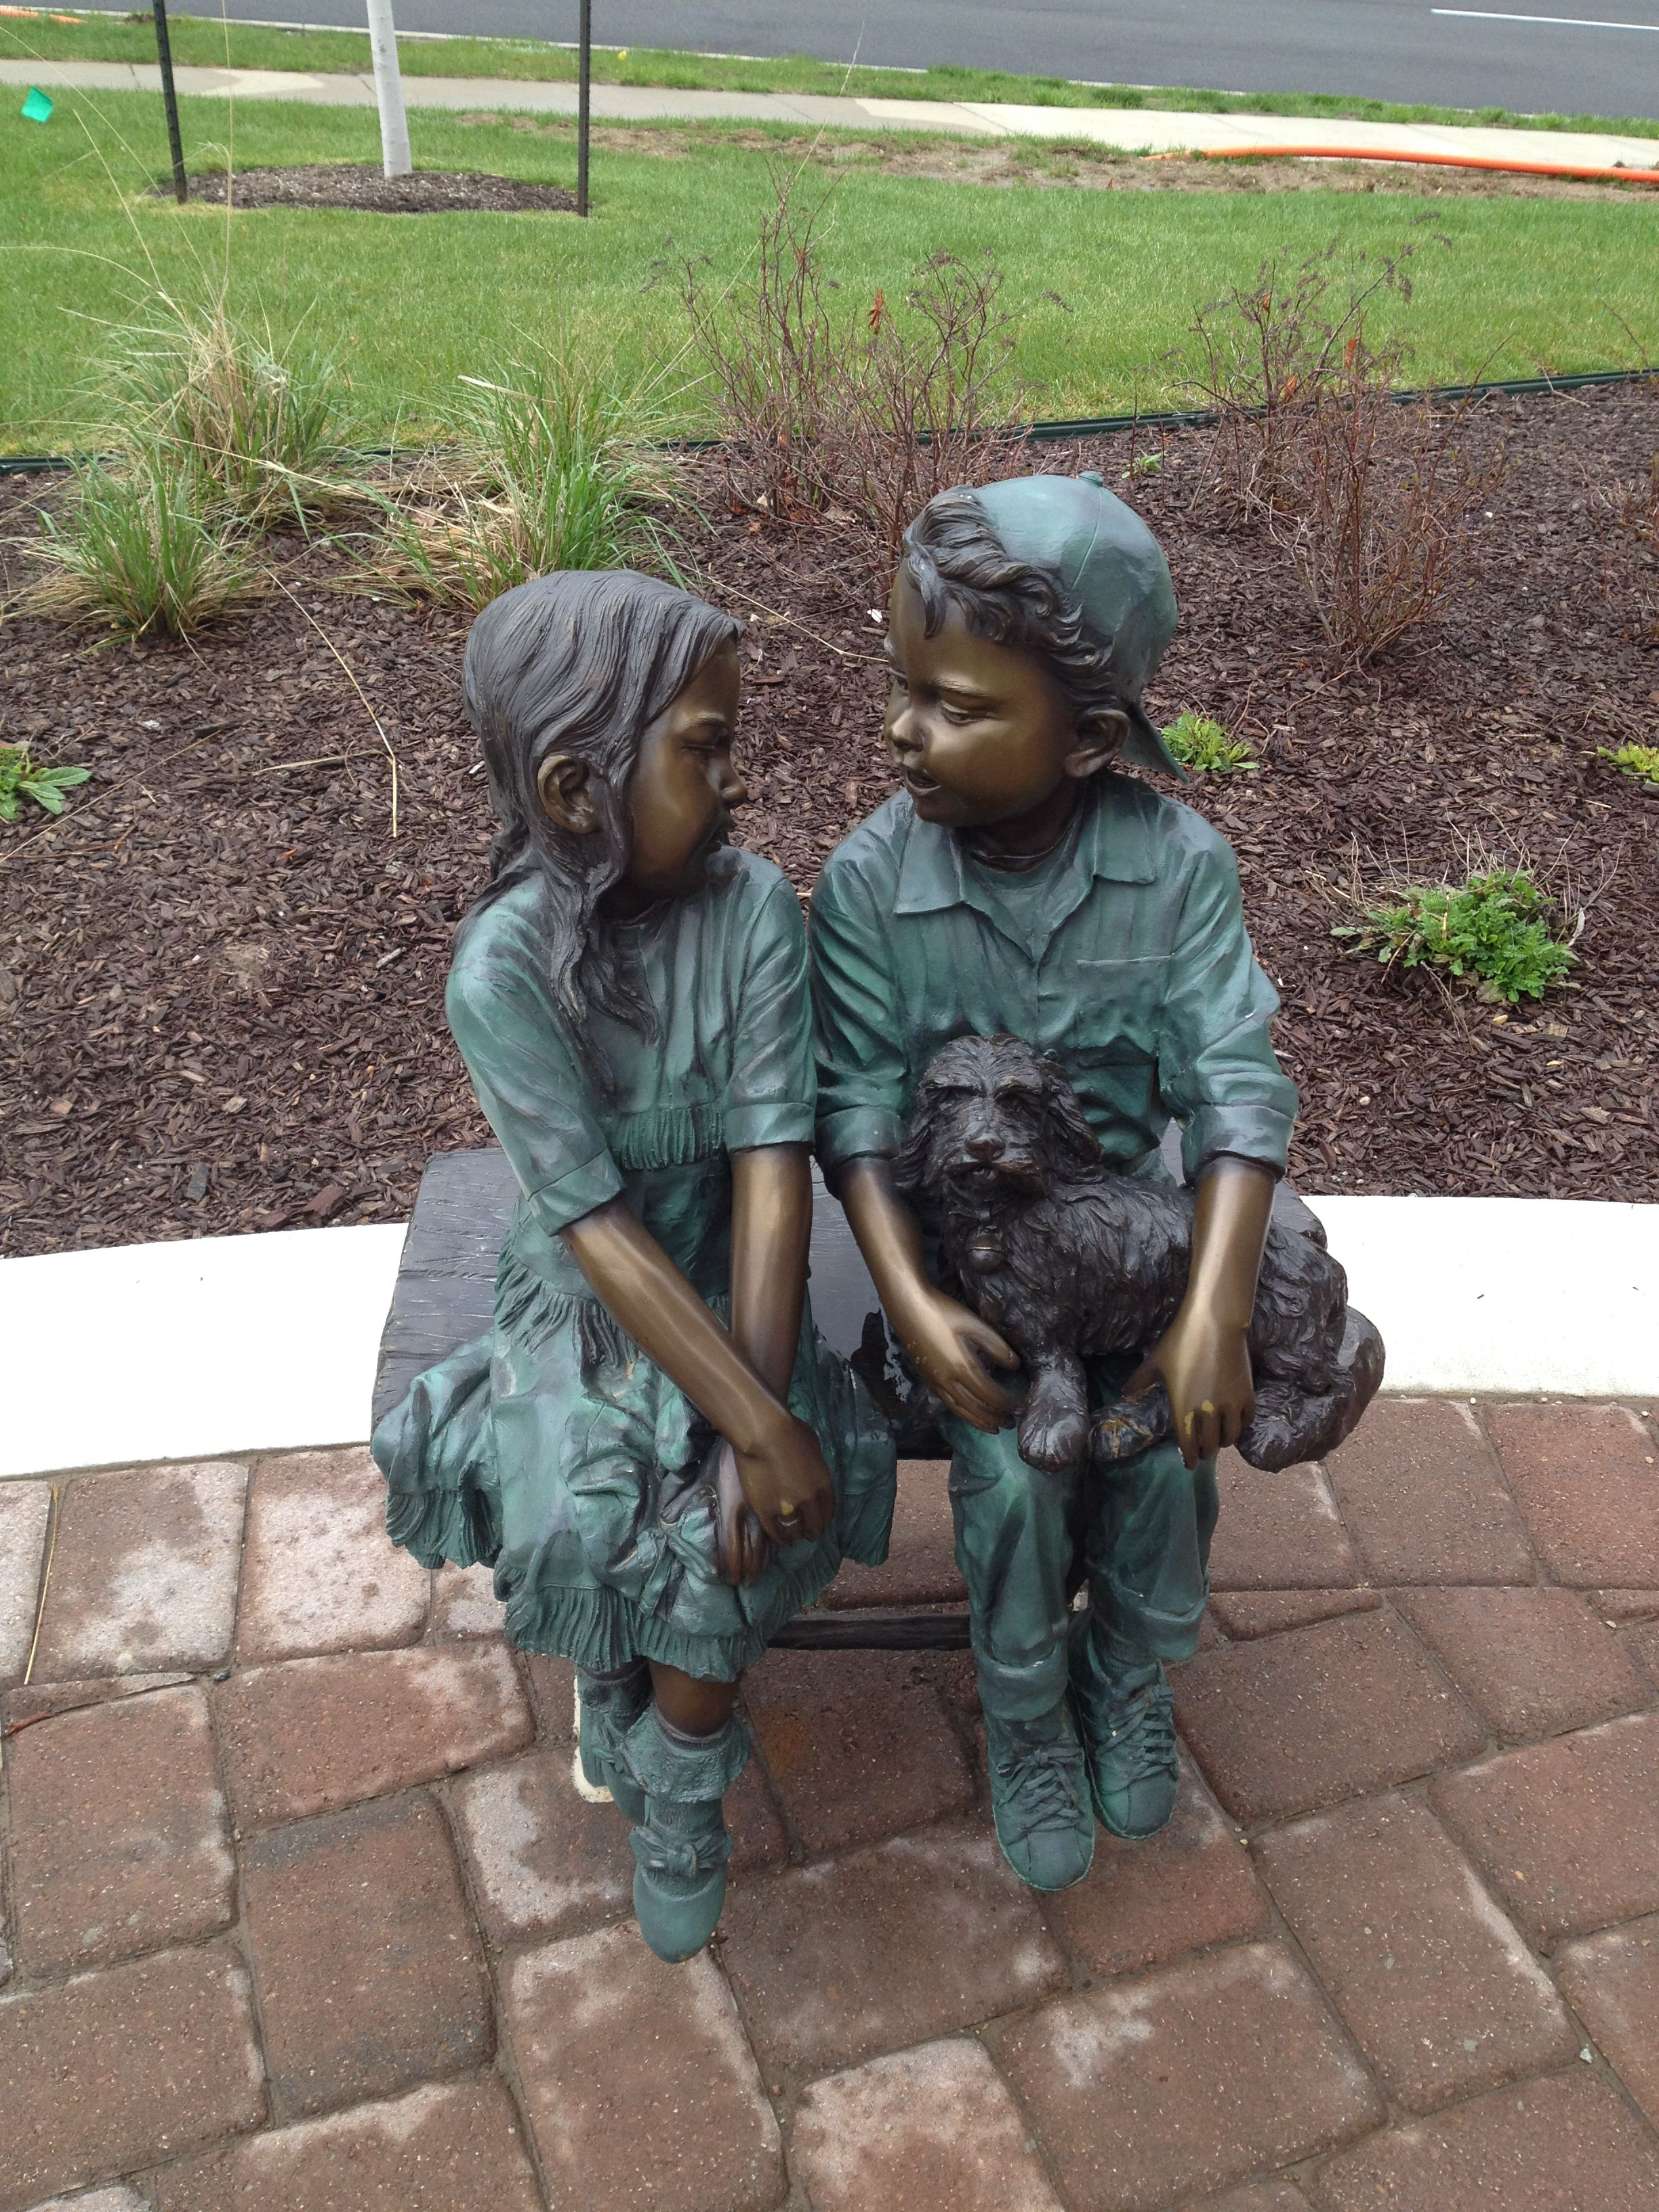 Sculpture at walgreens town center in leawood ks